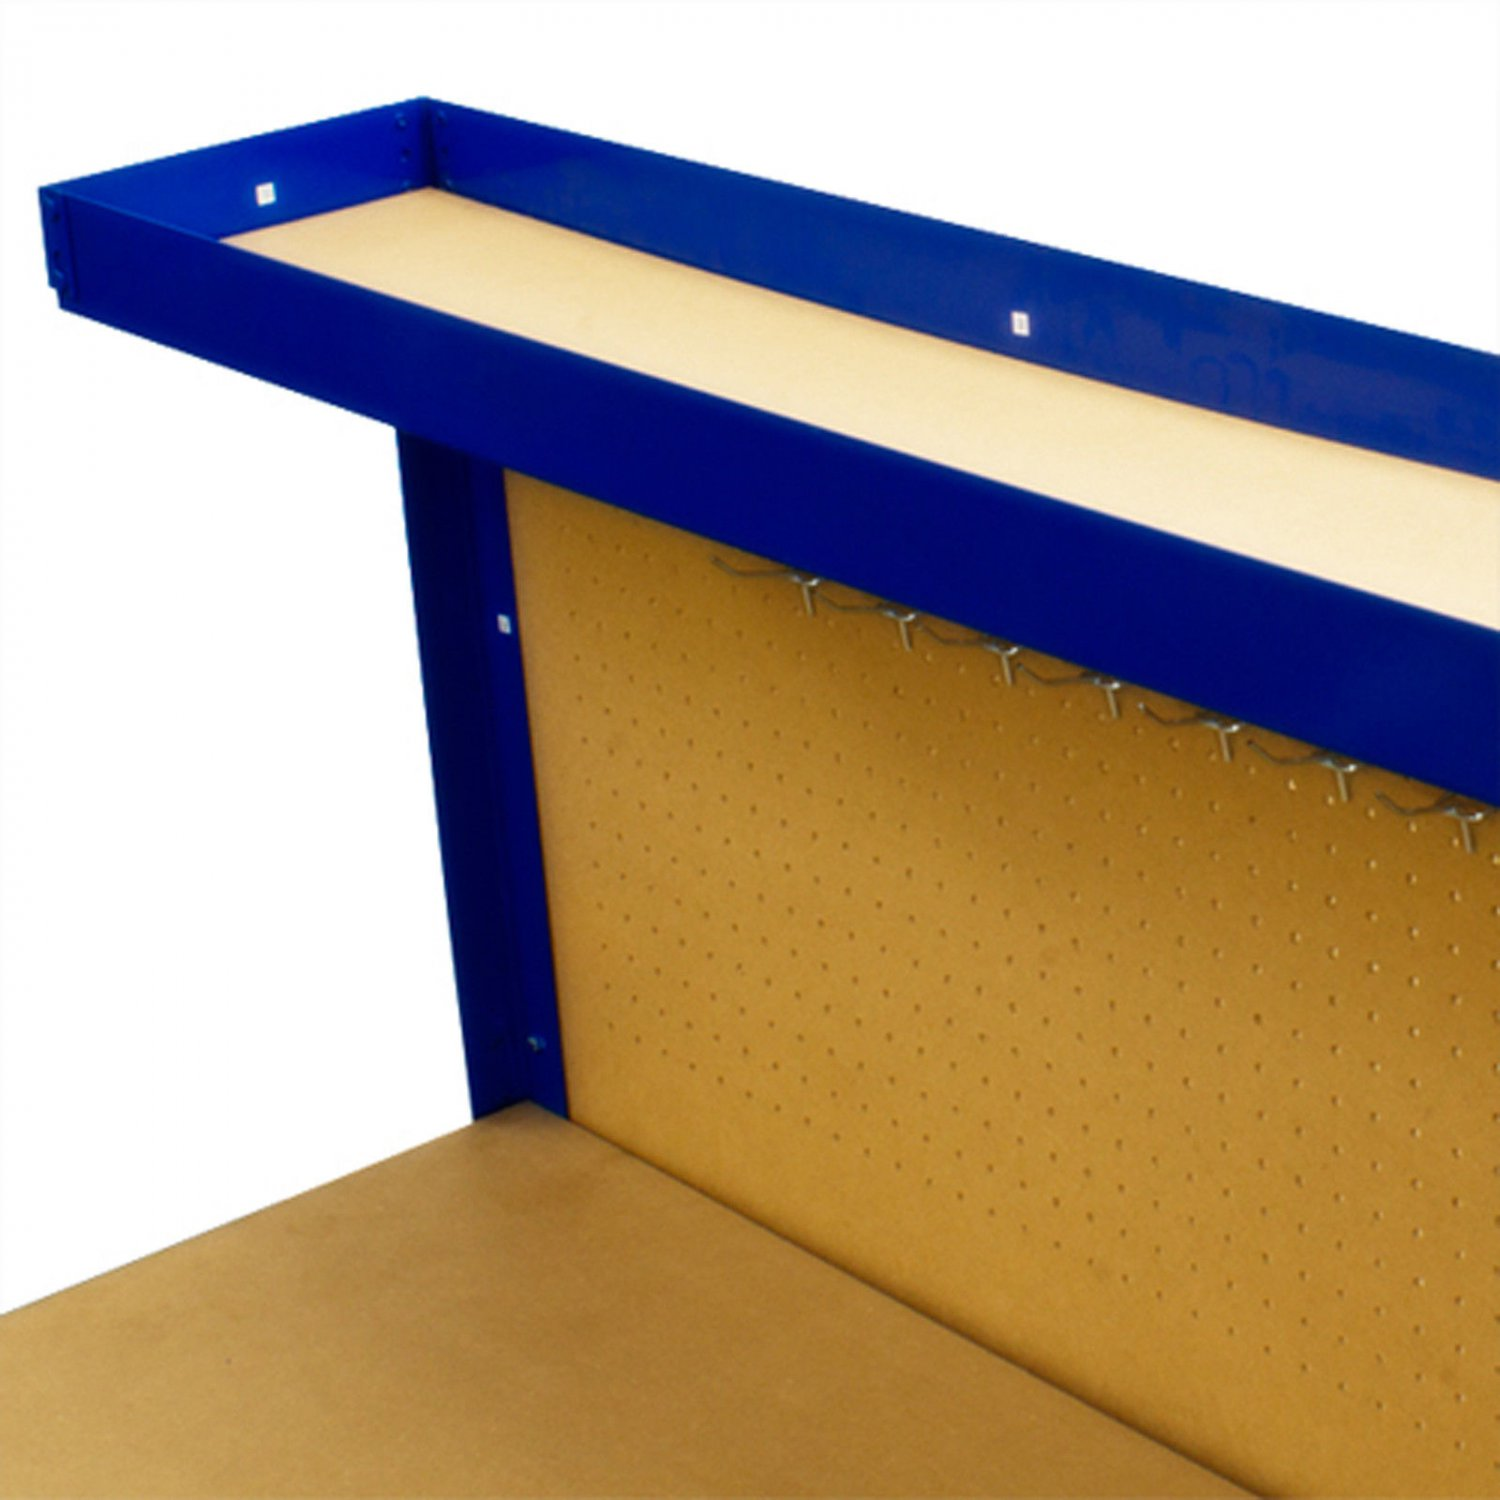 New work Bench Tool Storage With Drawers and Peg Boar Solid Steel Construction